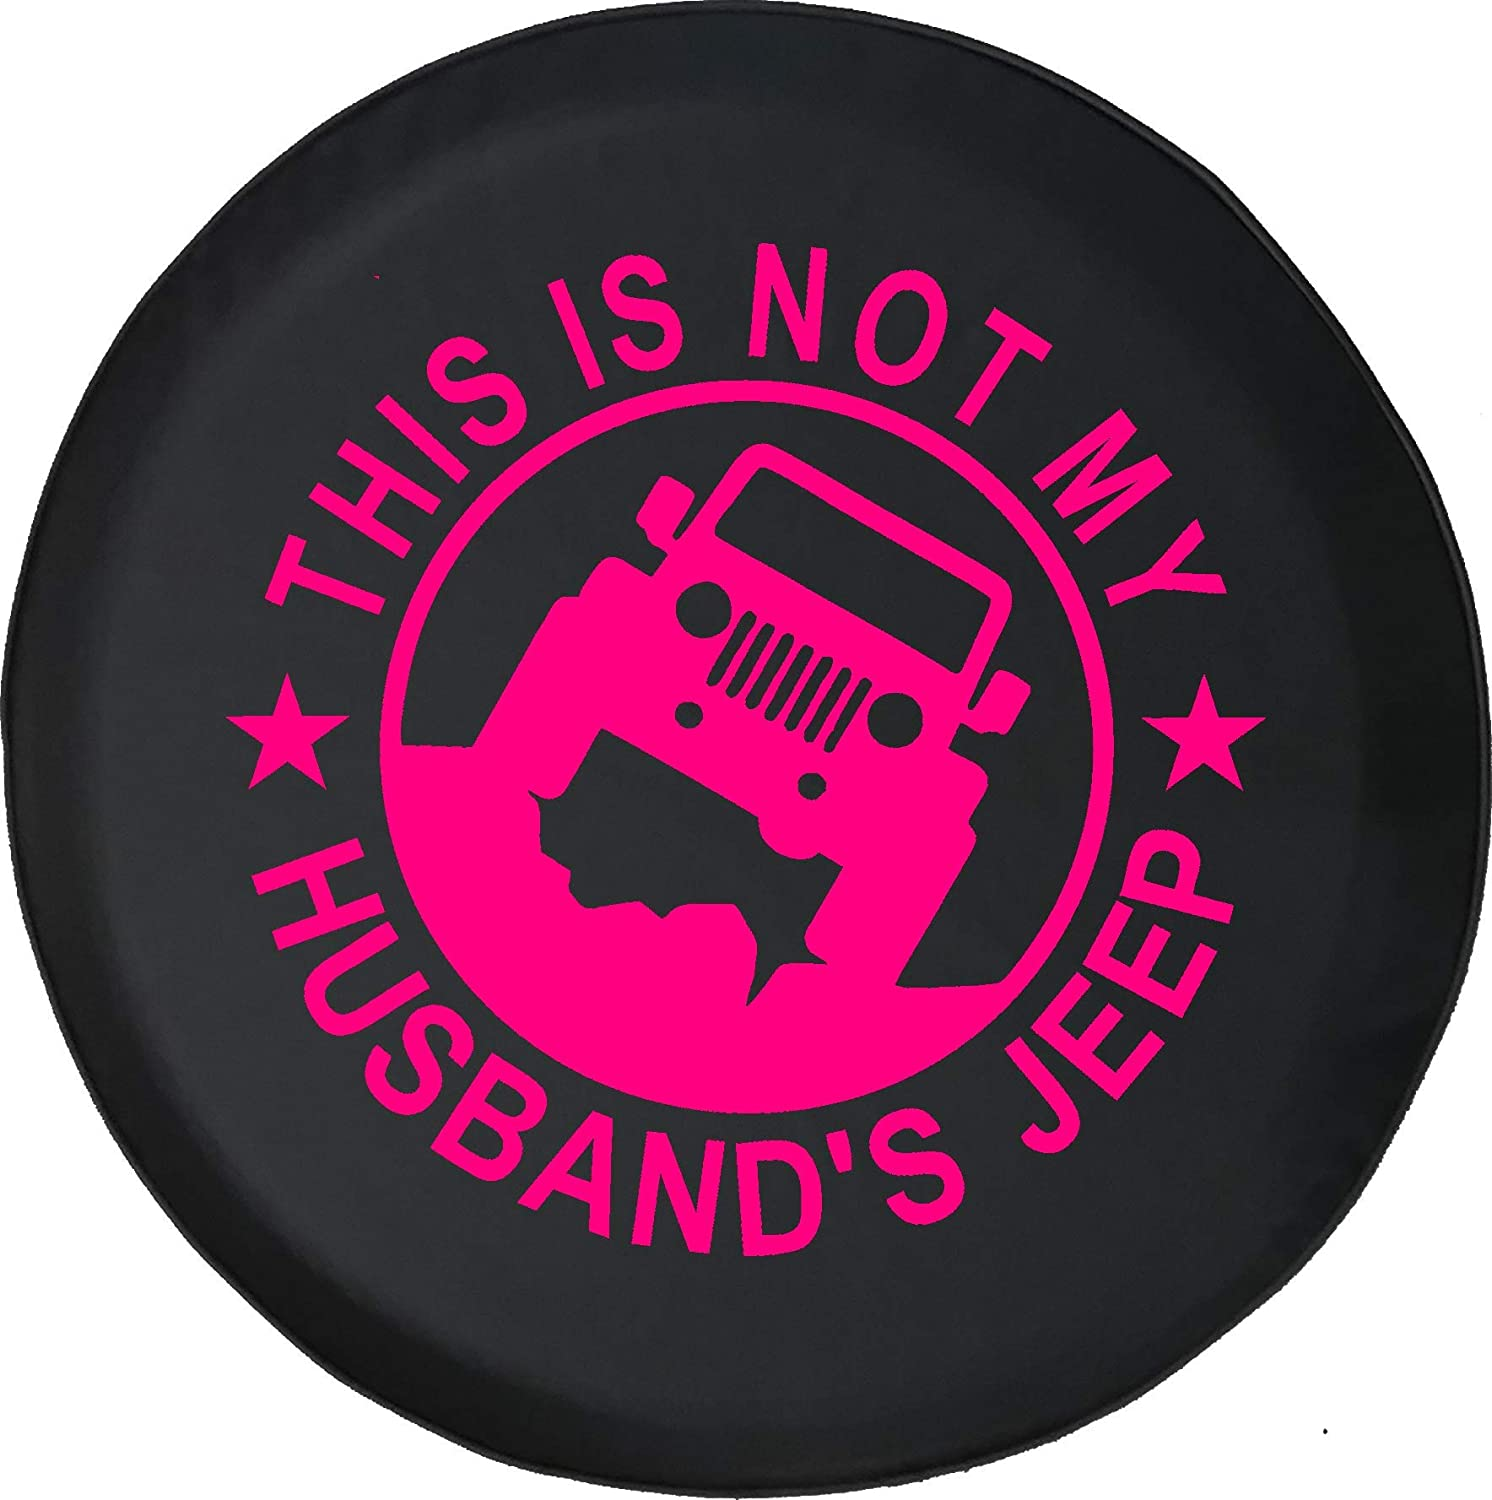 Jeep Tire Cover for Spare Tire This is NOT My Husbands Jeep Girl Ladies Wrangler Black 33 Inch